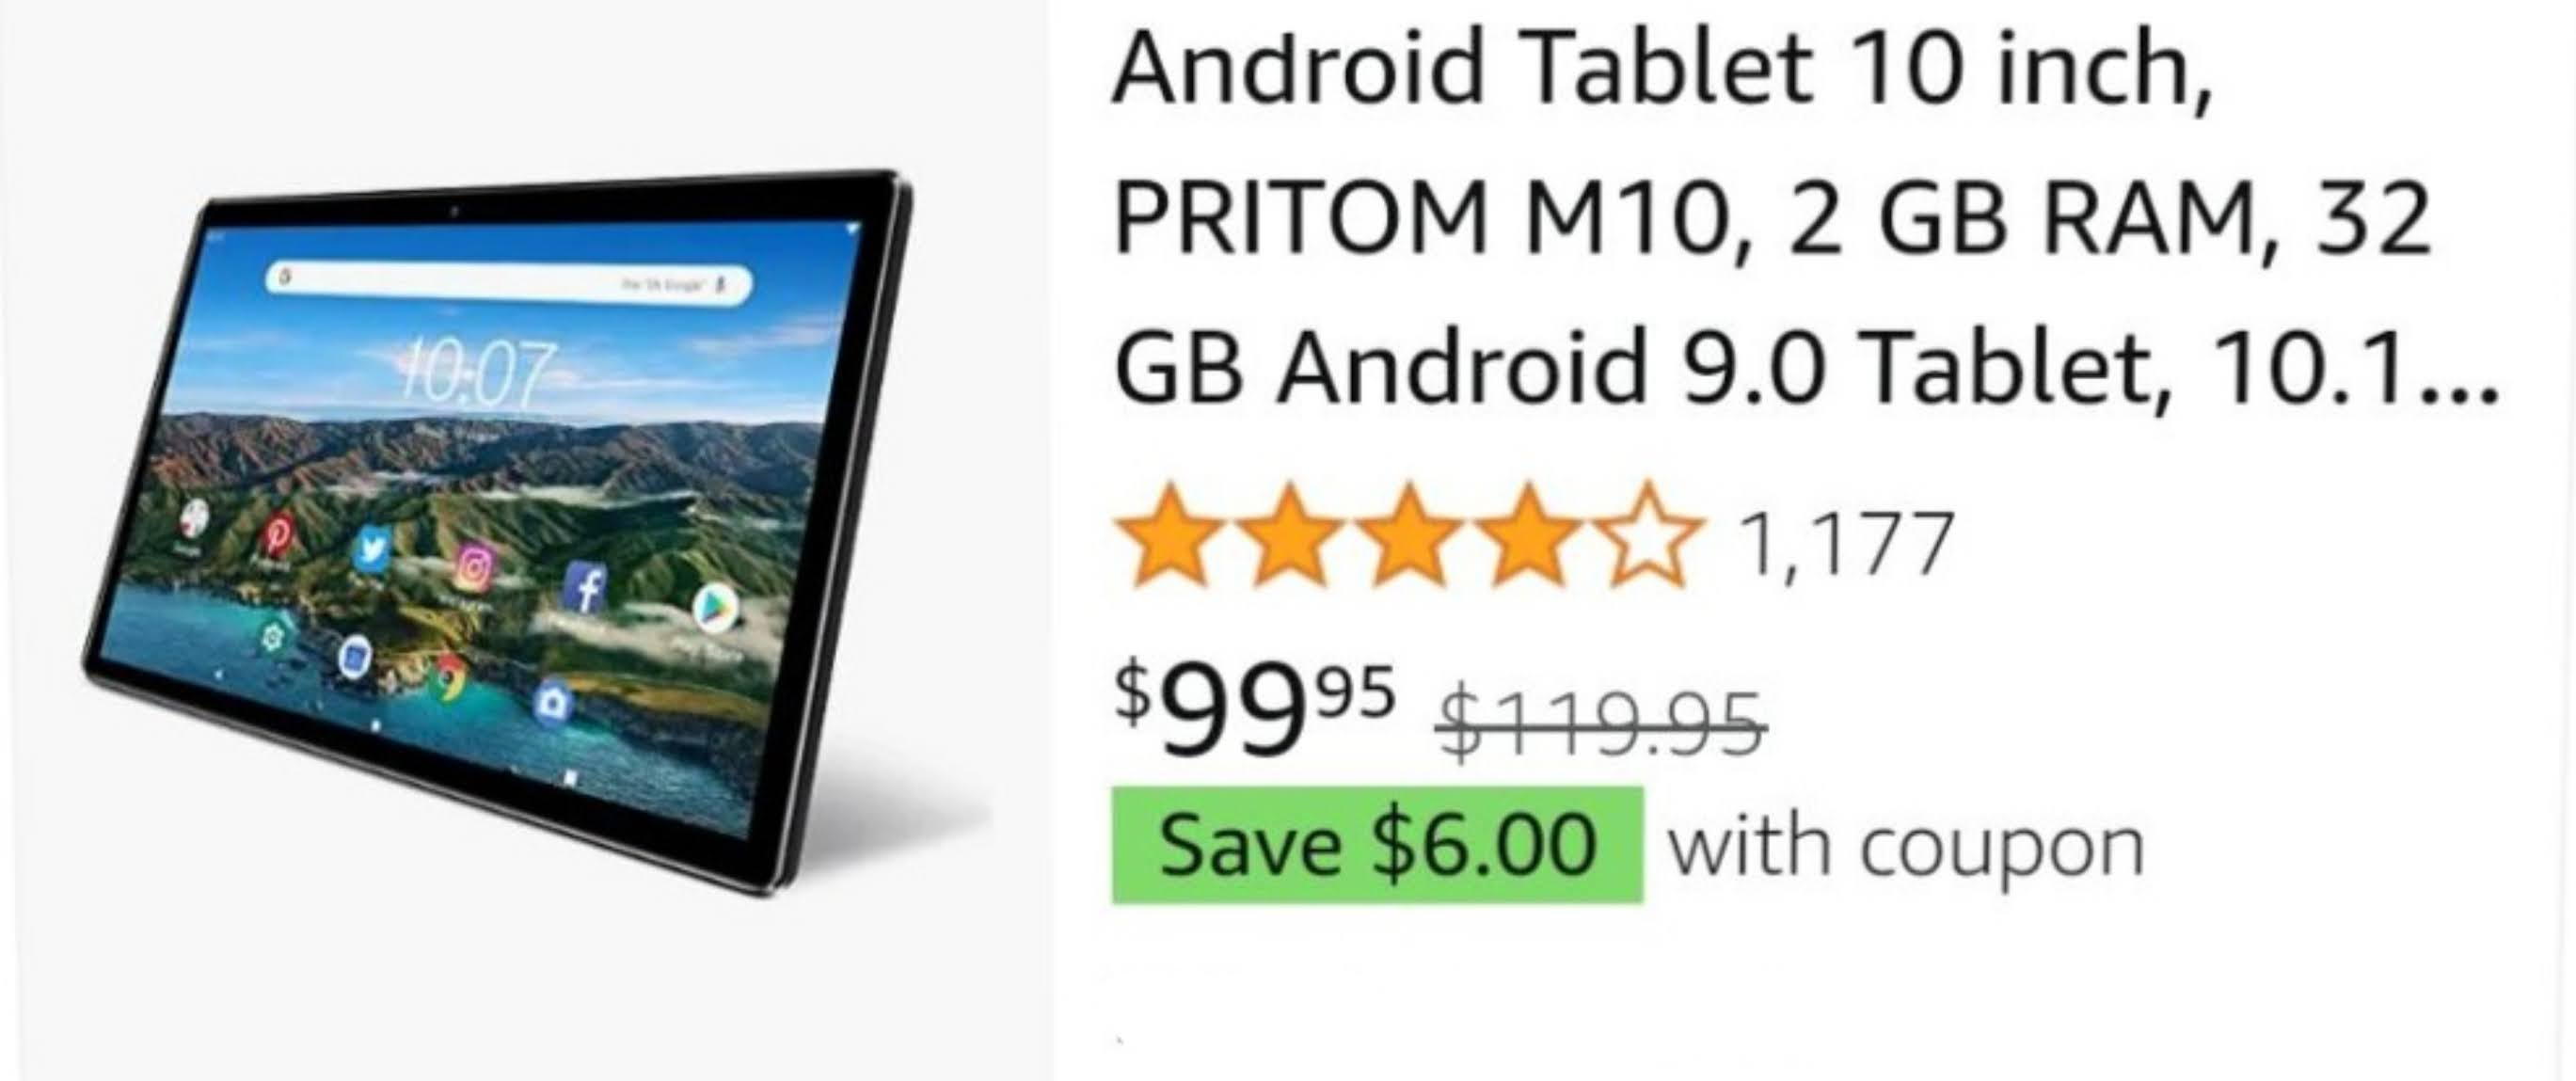 PRITOM Android tablet 10 inch andriod 9